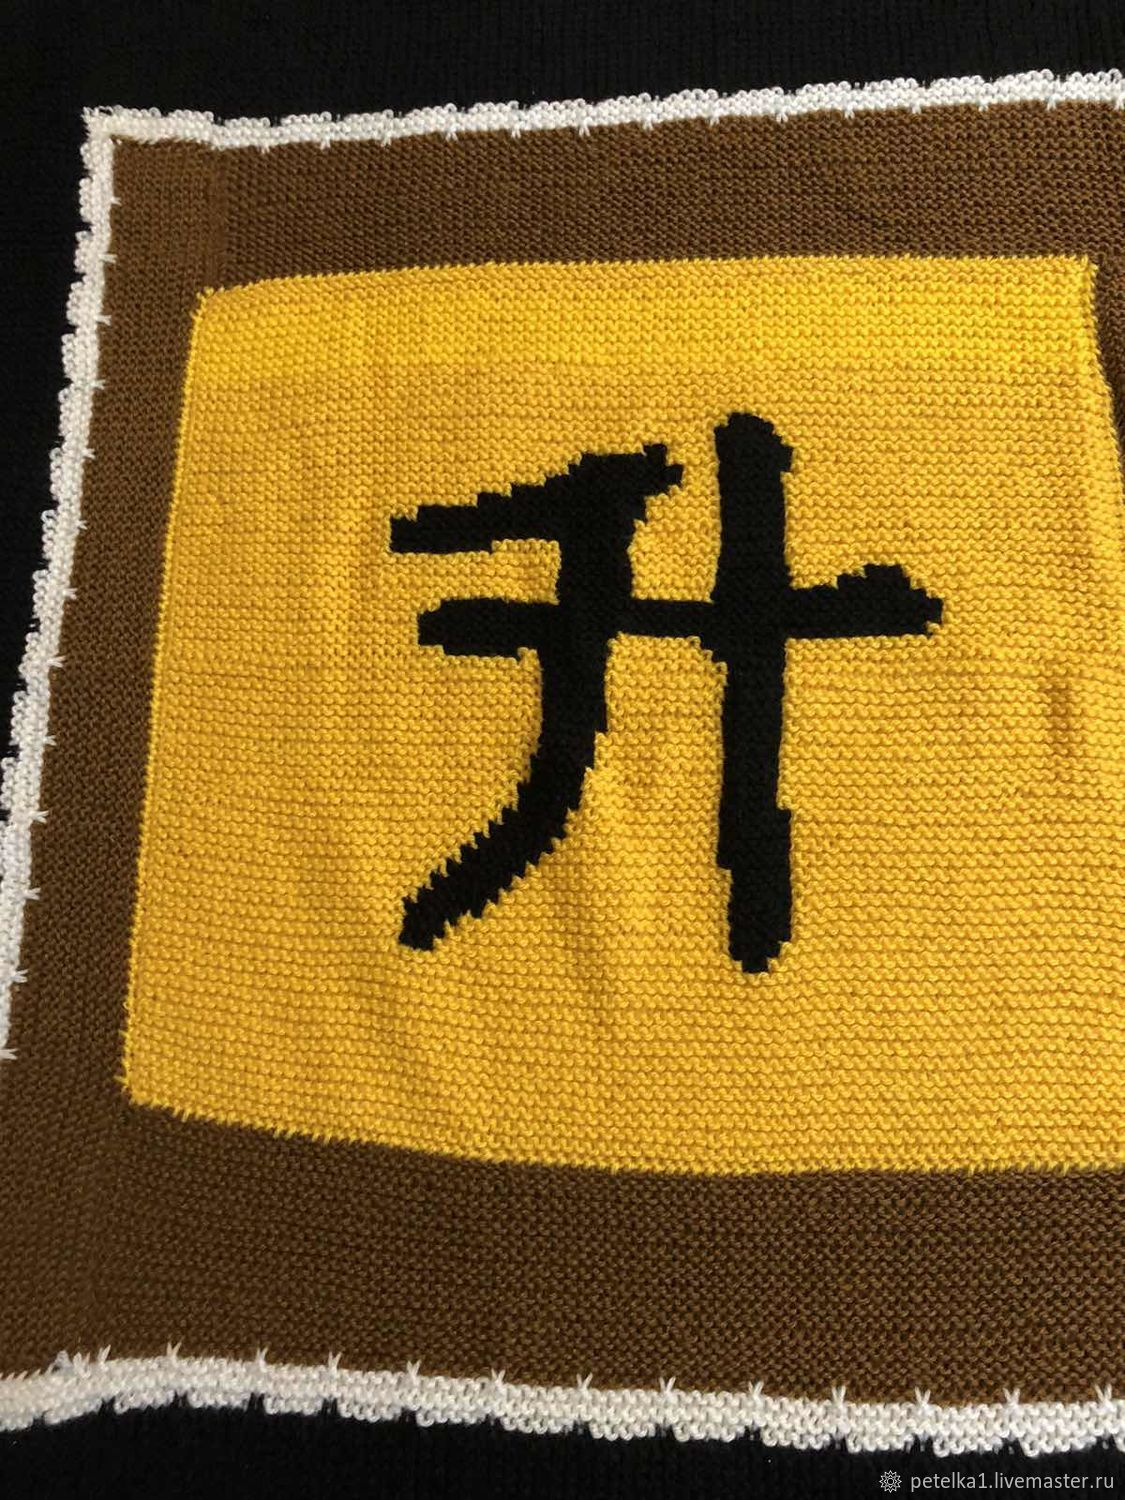 Feng Shui painting: a knitted blanket with a hieroglyph Rise, Painting feng shui, Astrakhan,  Фото №1